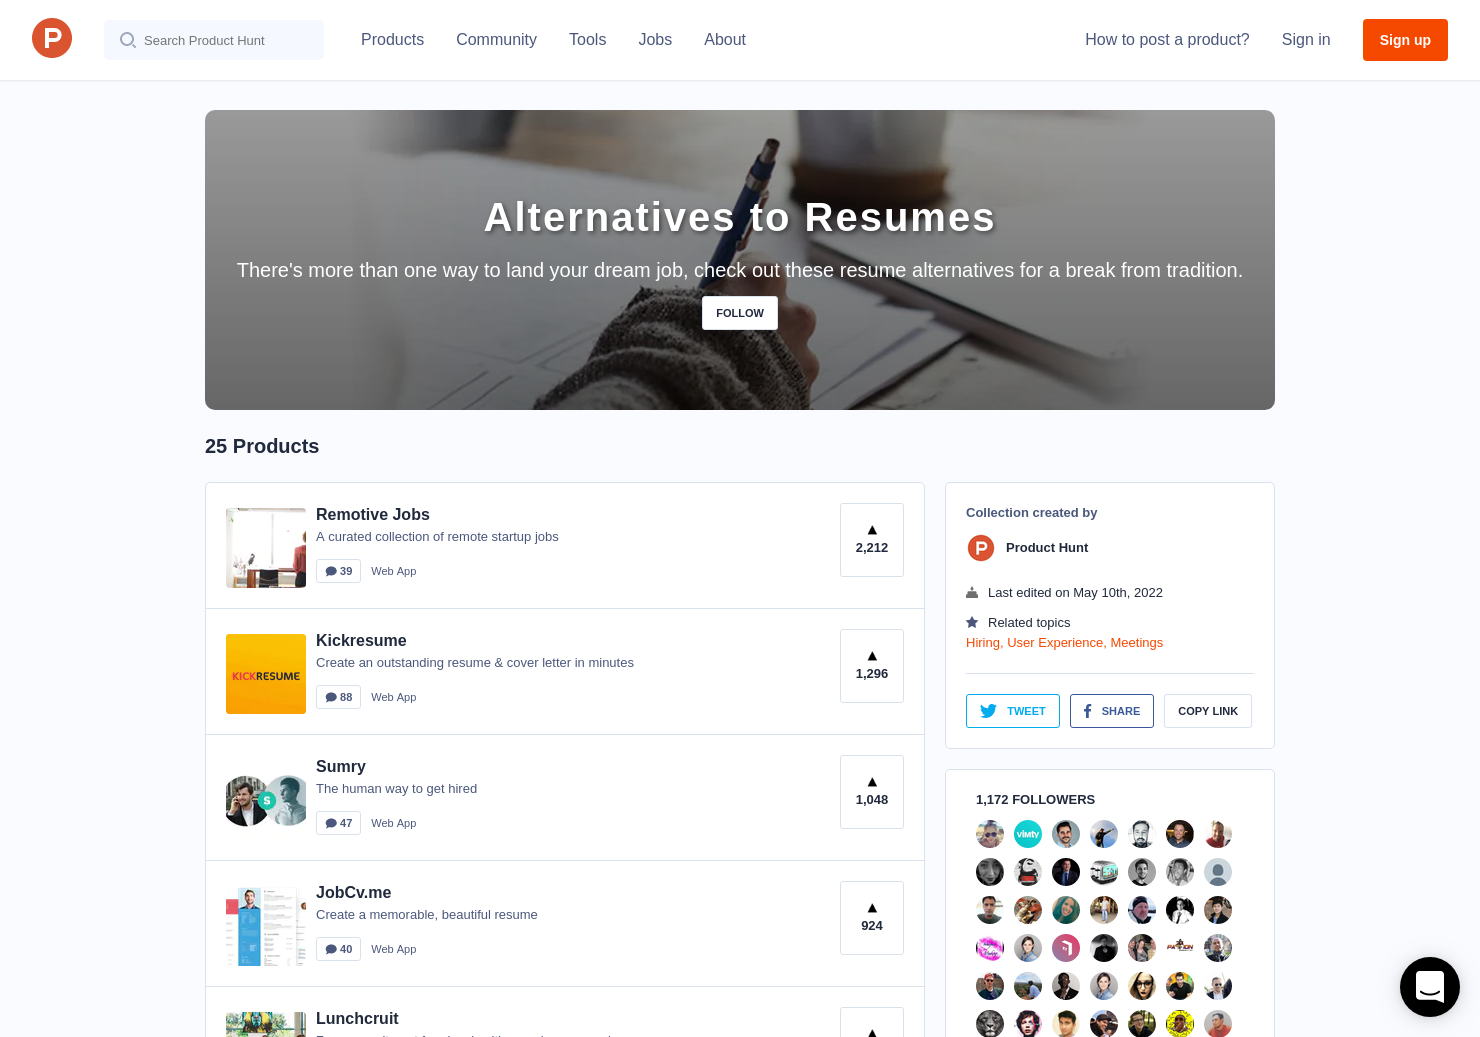 alternatives to resumes product hunt